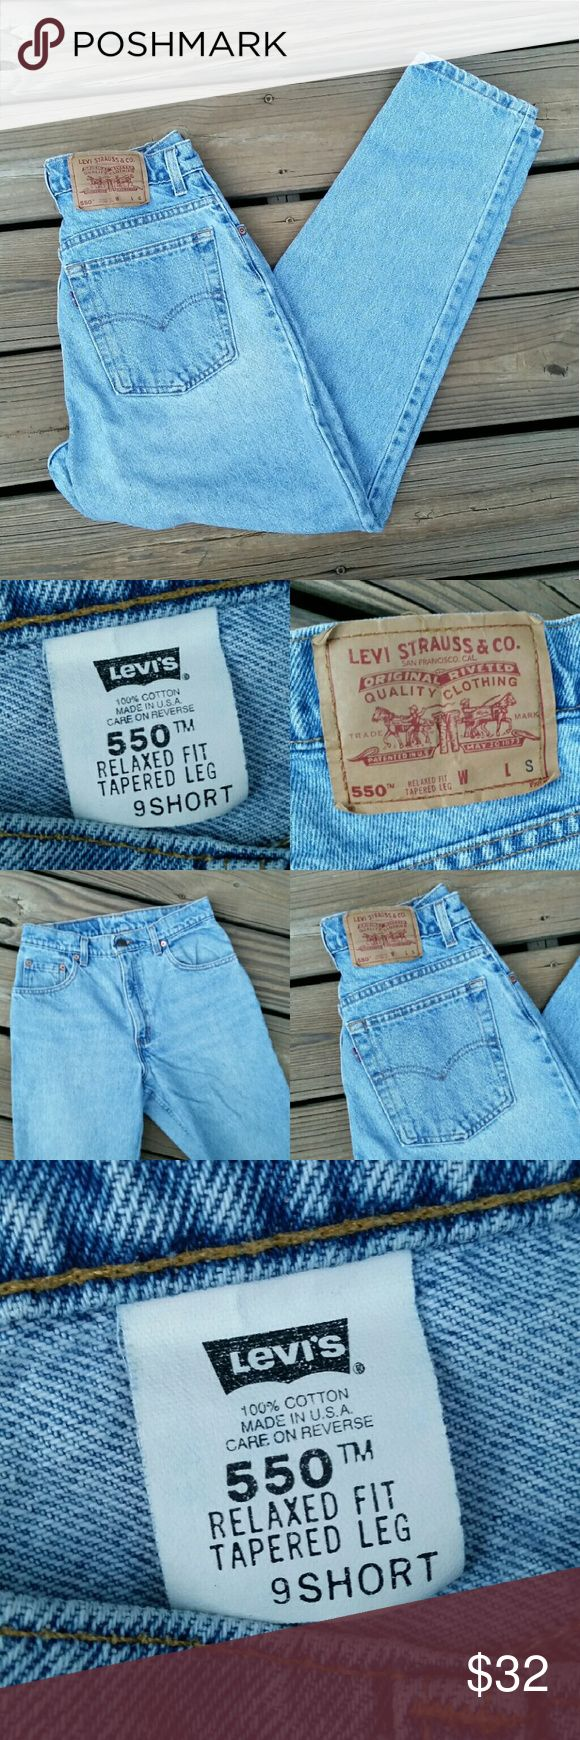 "Vintage LEVI'S 550 ""Mom"" Jeans Perfect fall jeans! Vintage Levi 550 relaxed fit, tapered legs, ""mom"" jeans. 100% cotton. These are labeled size 9 short, but these are true vintage and constructed differently than today's jeans. 25"" waist. 12"" rise. 37"" hips. 29"" inseam. Levi's Jeans"